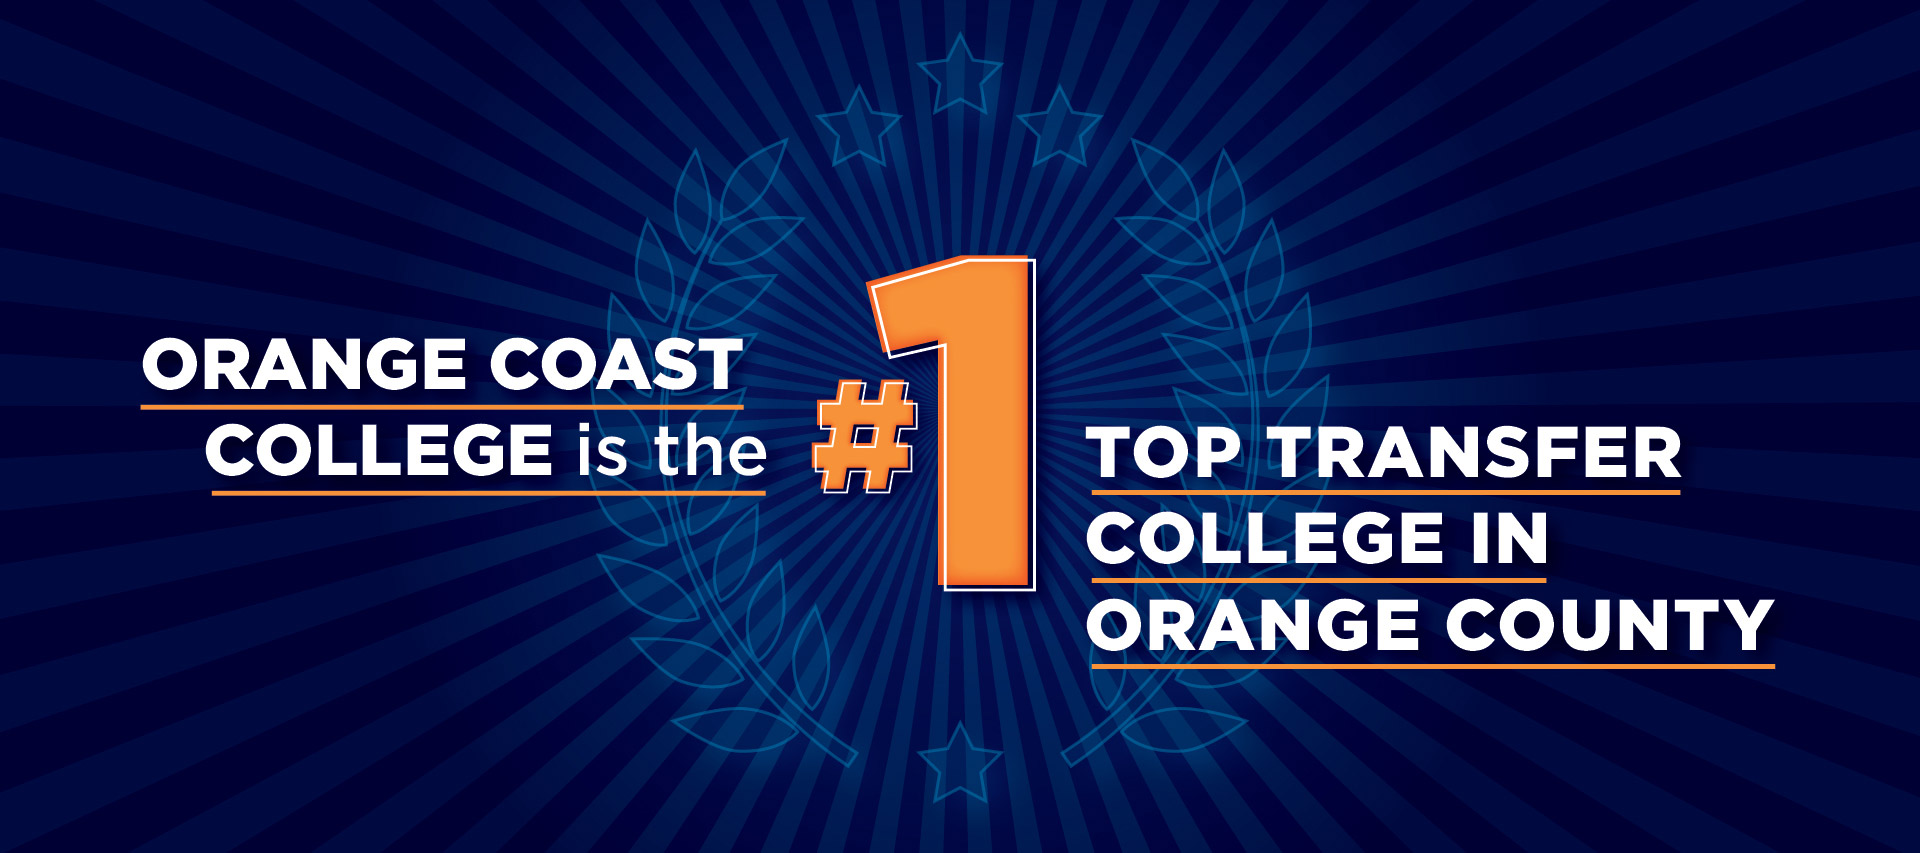 OCC is the #1 Top Transfer College in Orange County